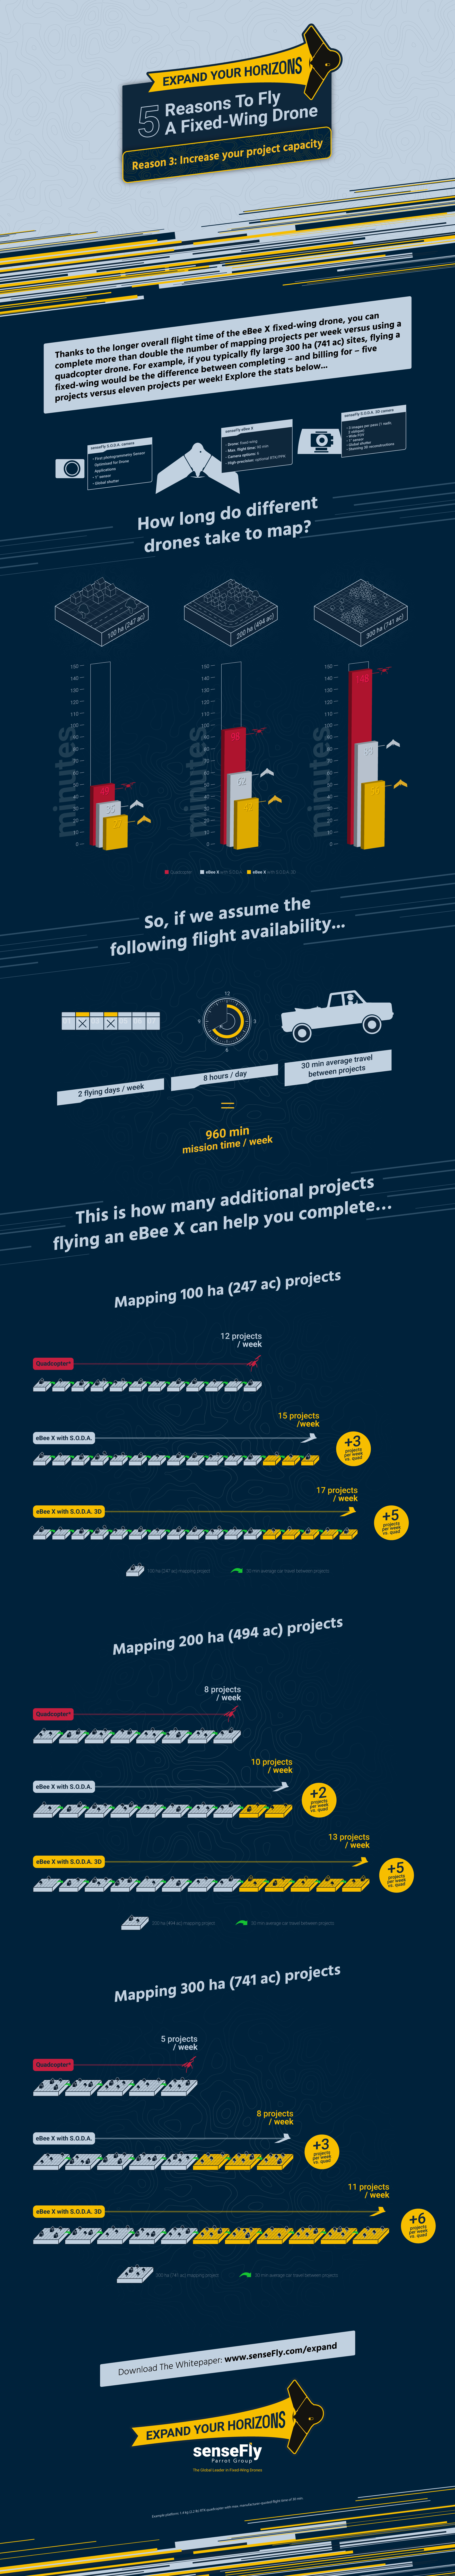 Infographic Reason 3: Increase your project capacity